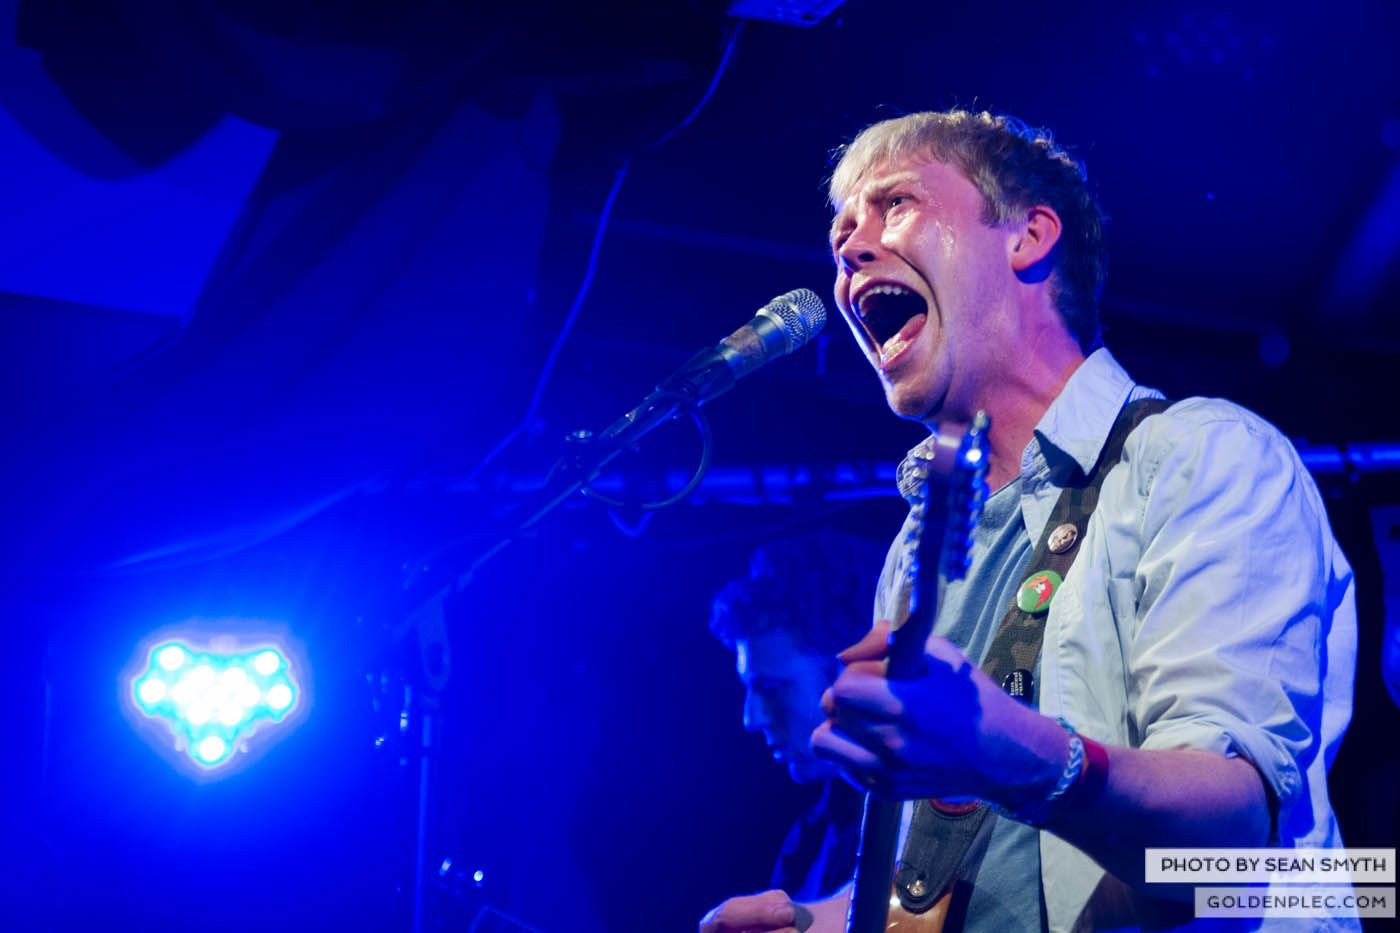 The Flaws at Whelans by Sean Smyth